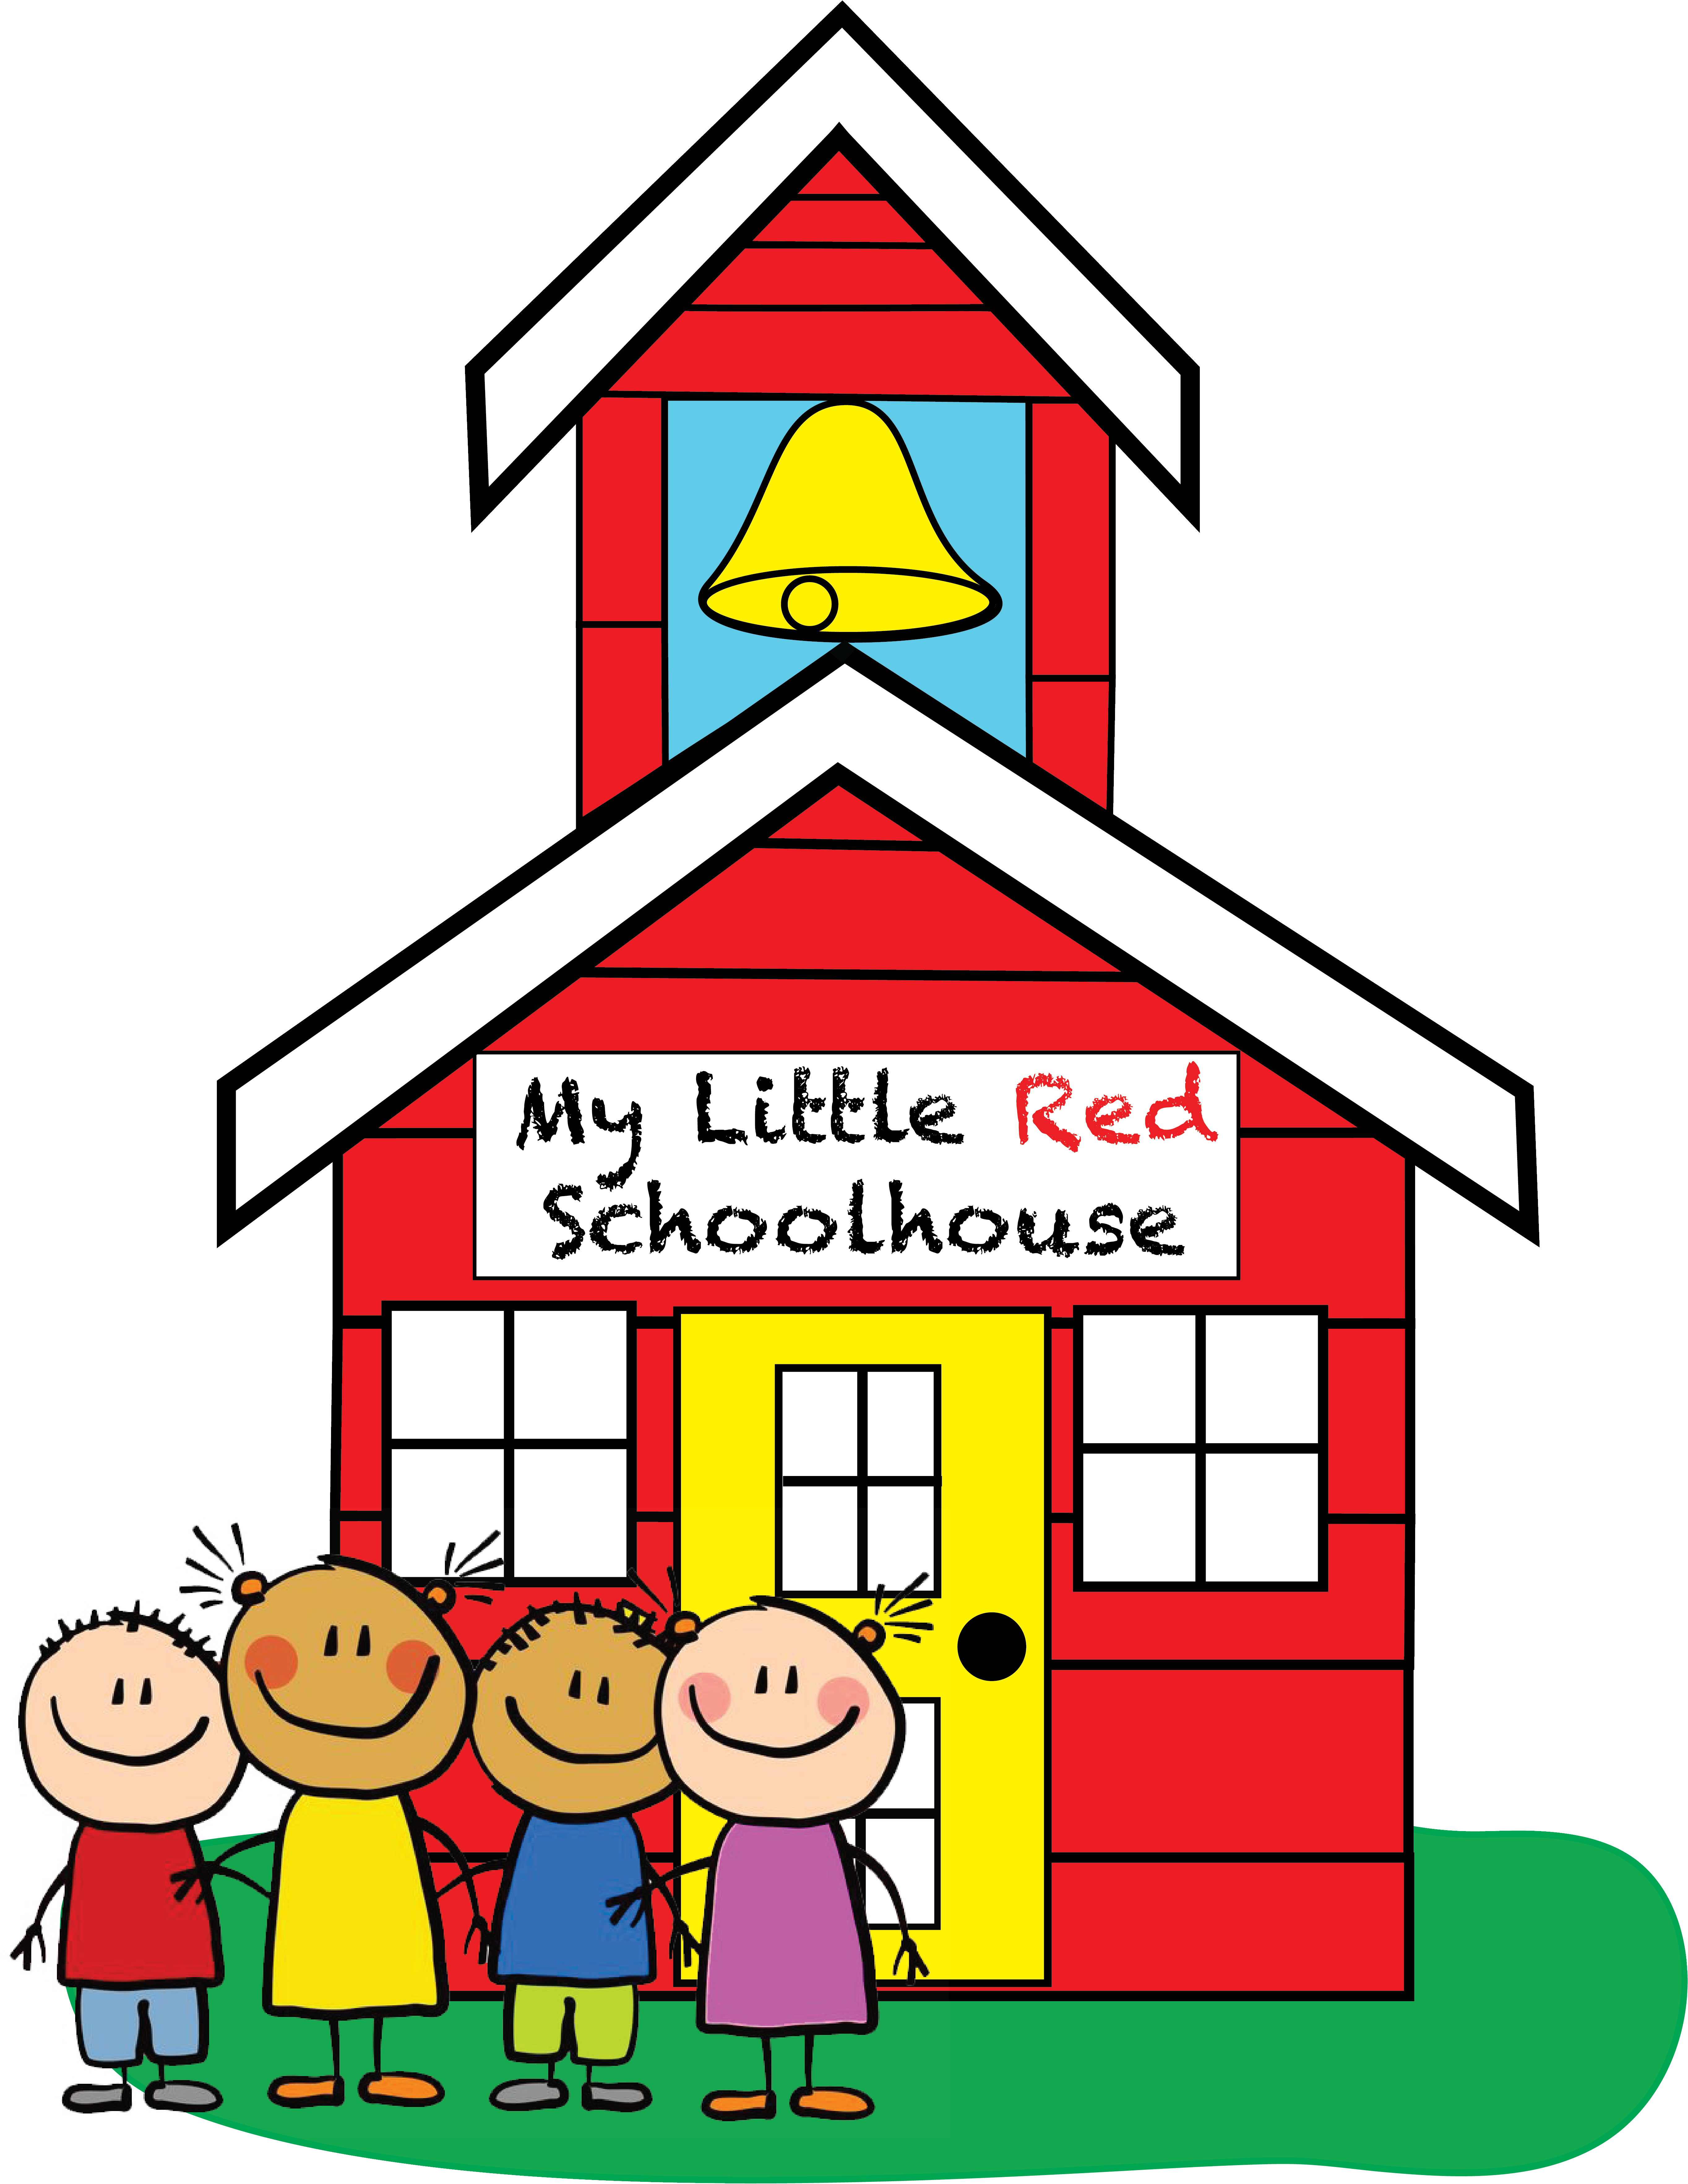 My home . Schoolhouse clipart little red schoolhouse